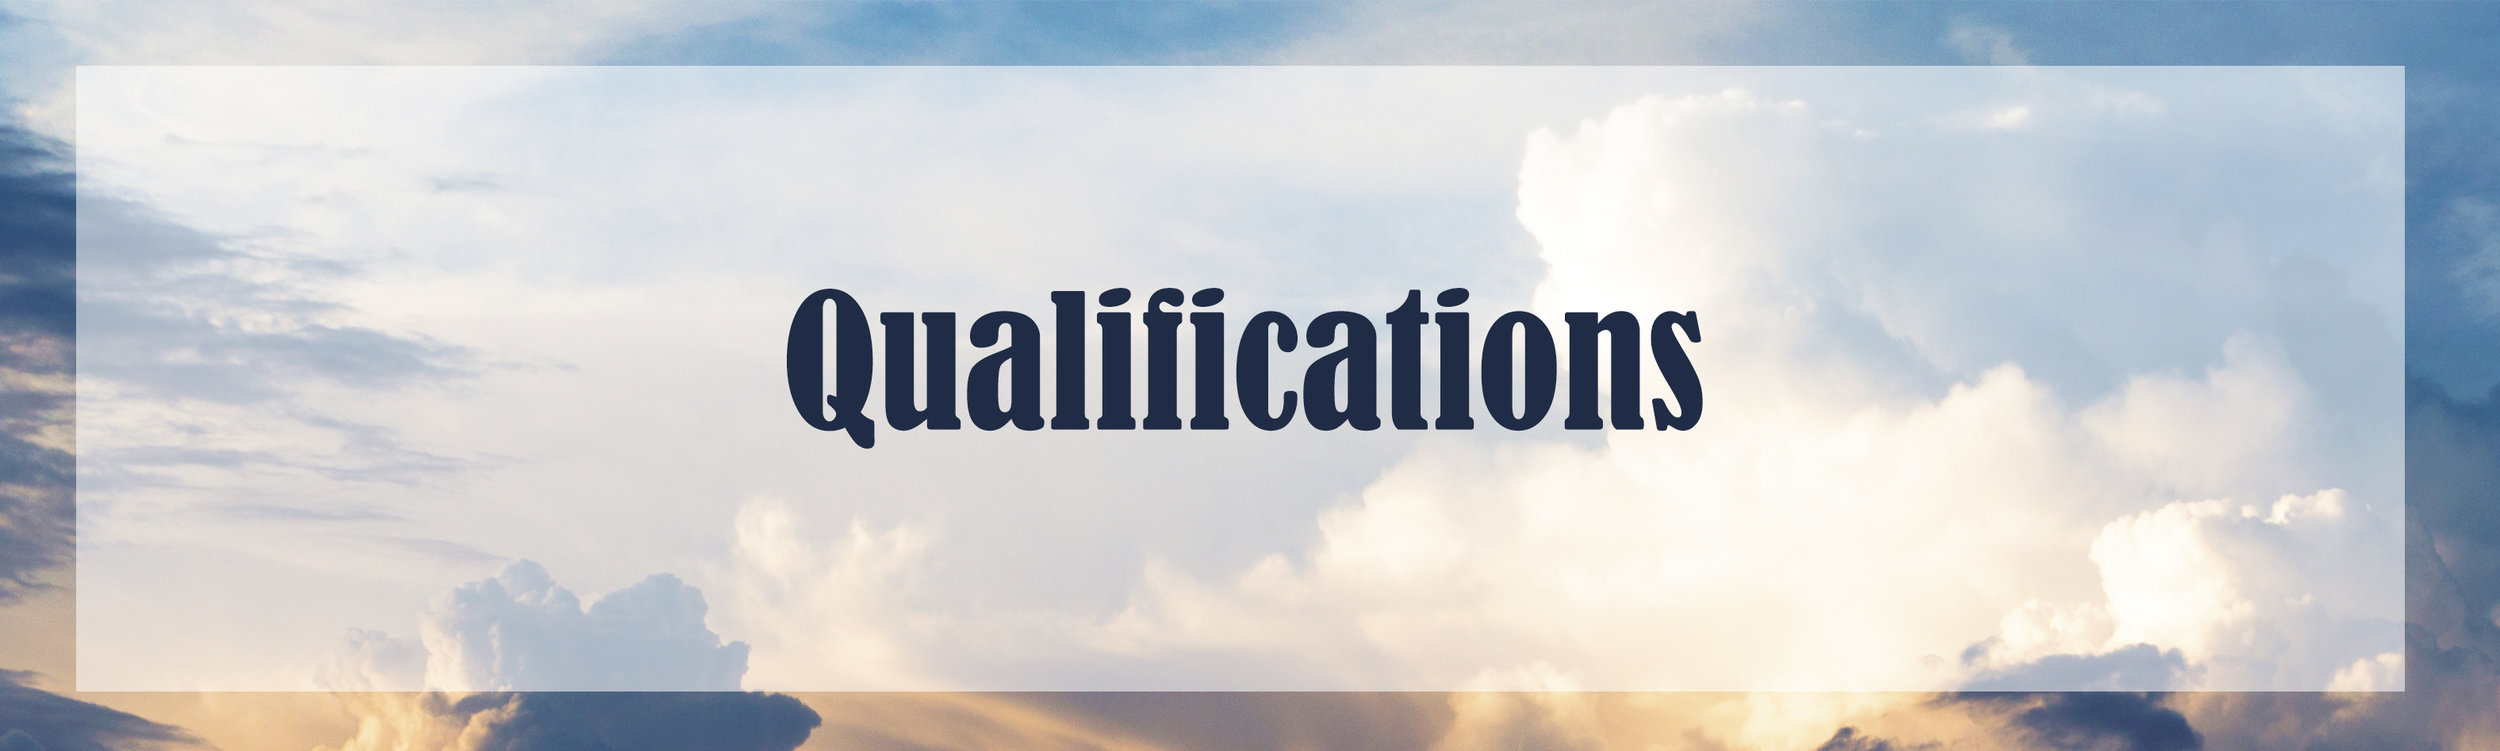 qualifications header.jpg